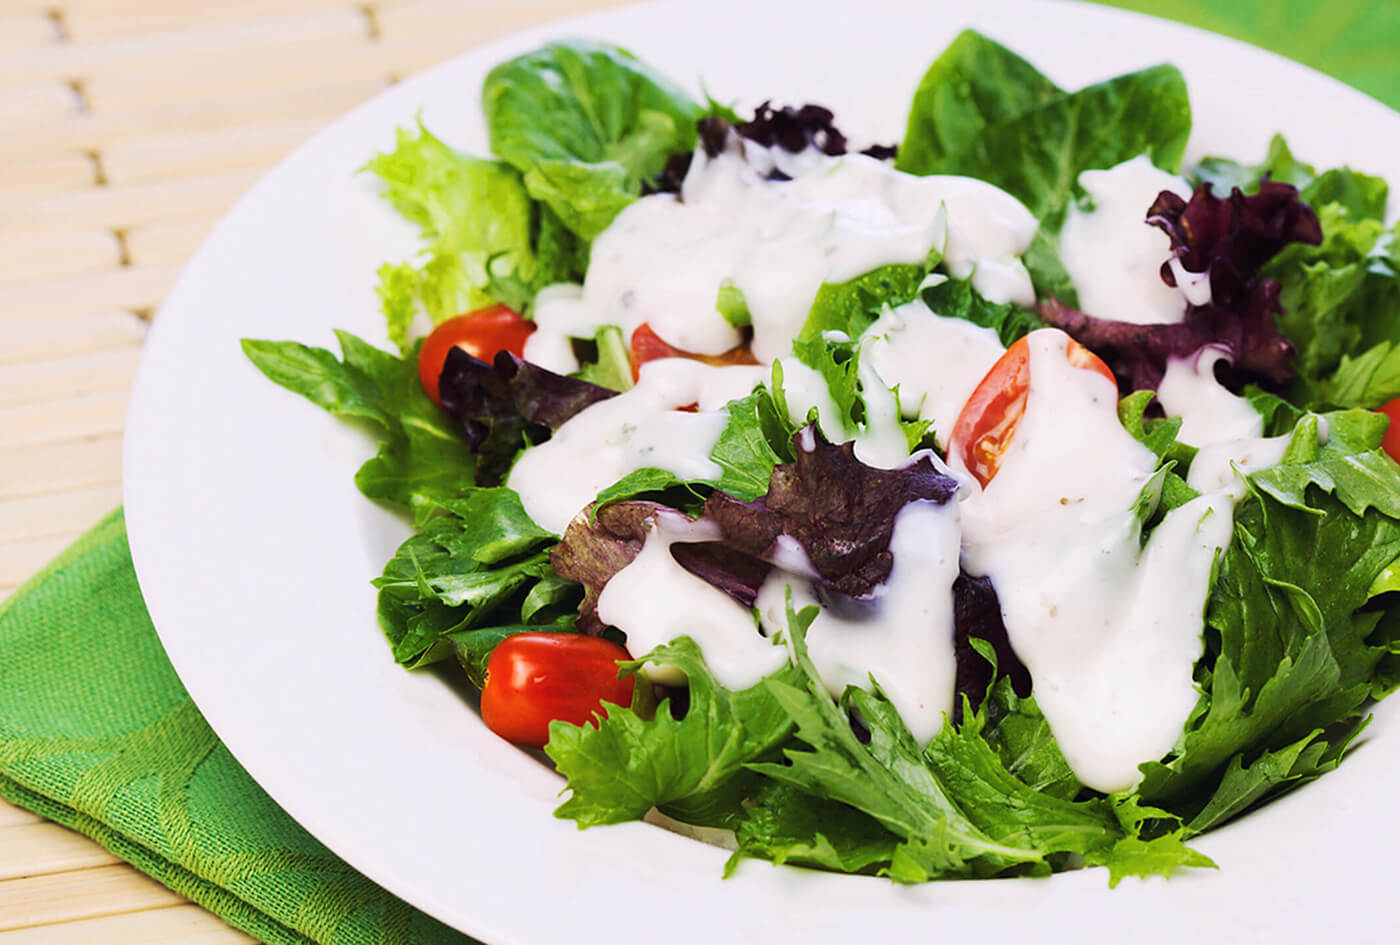 Mixed greens salad with cherry tomatoes and GCI improved dressing